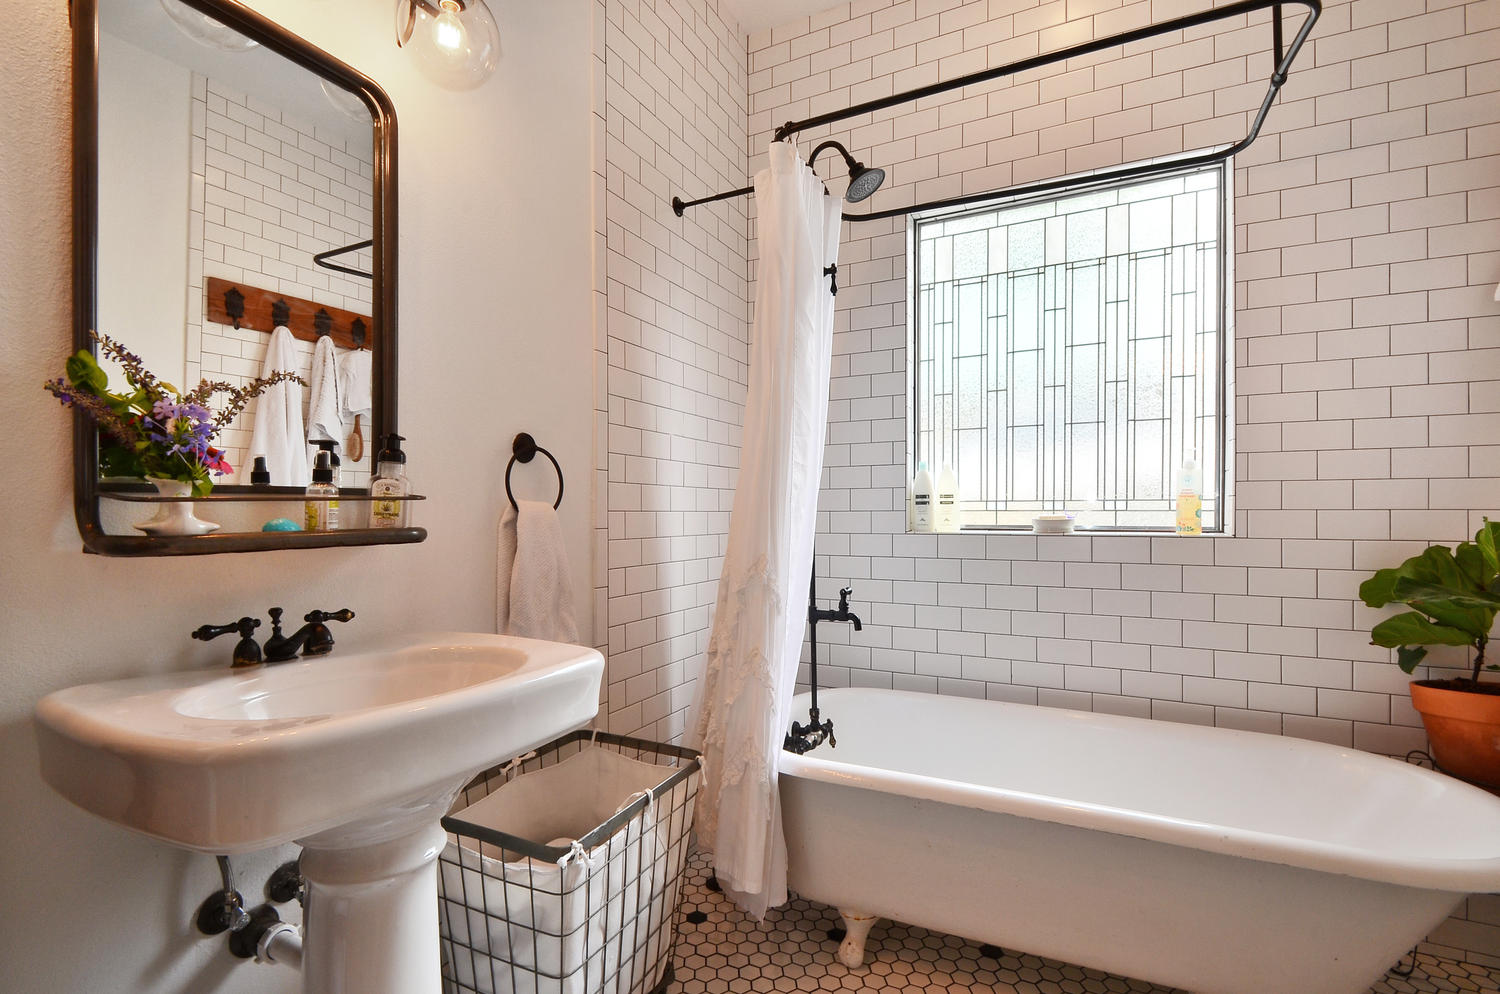 Bathroom Remodel in Austin with pedestal sink and clawfoot tub